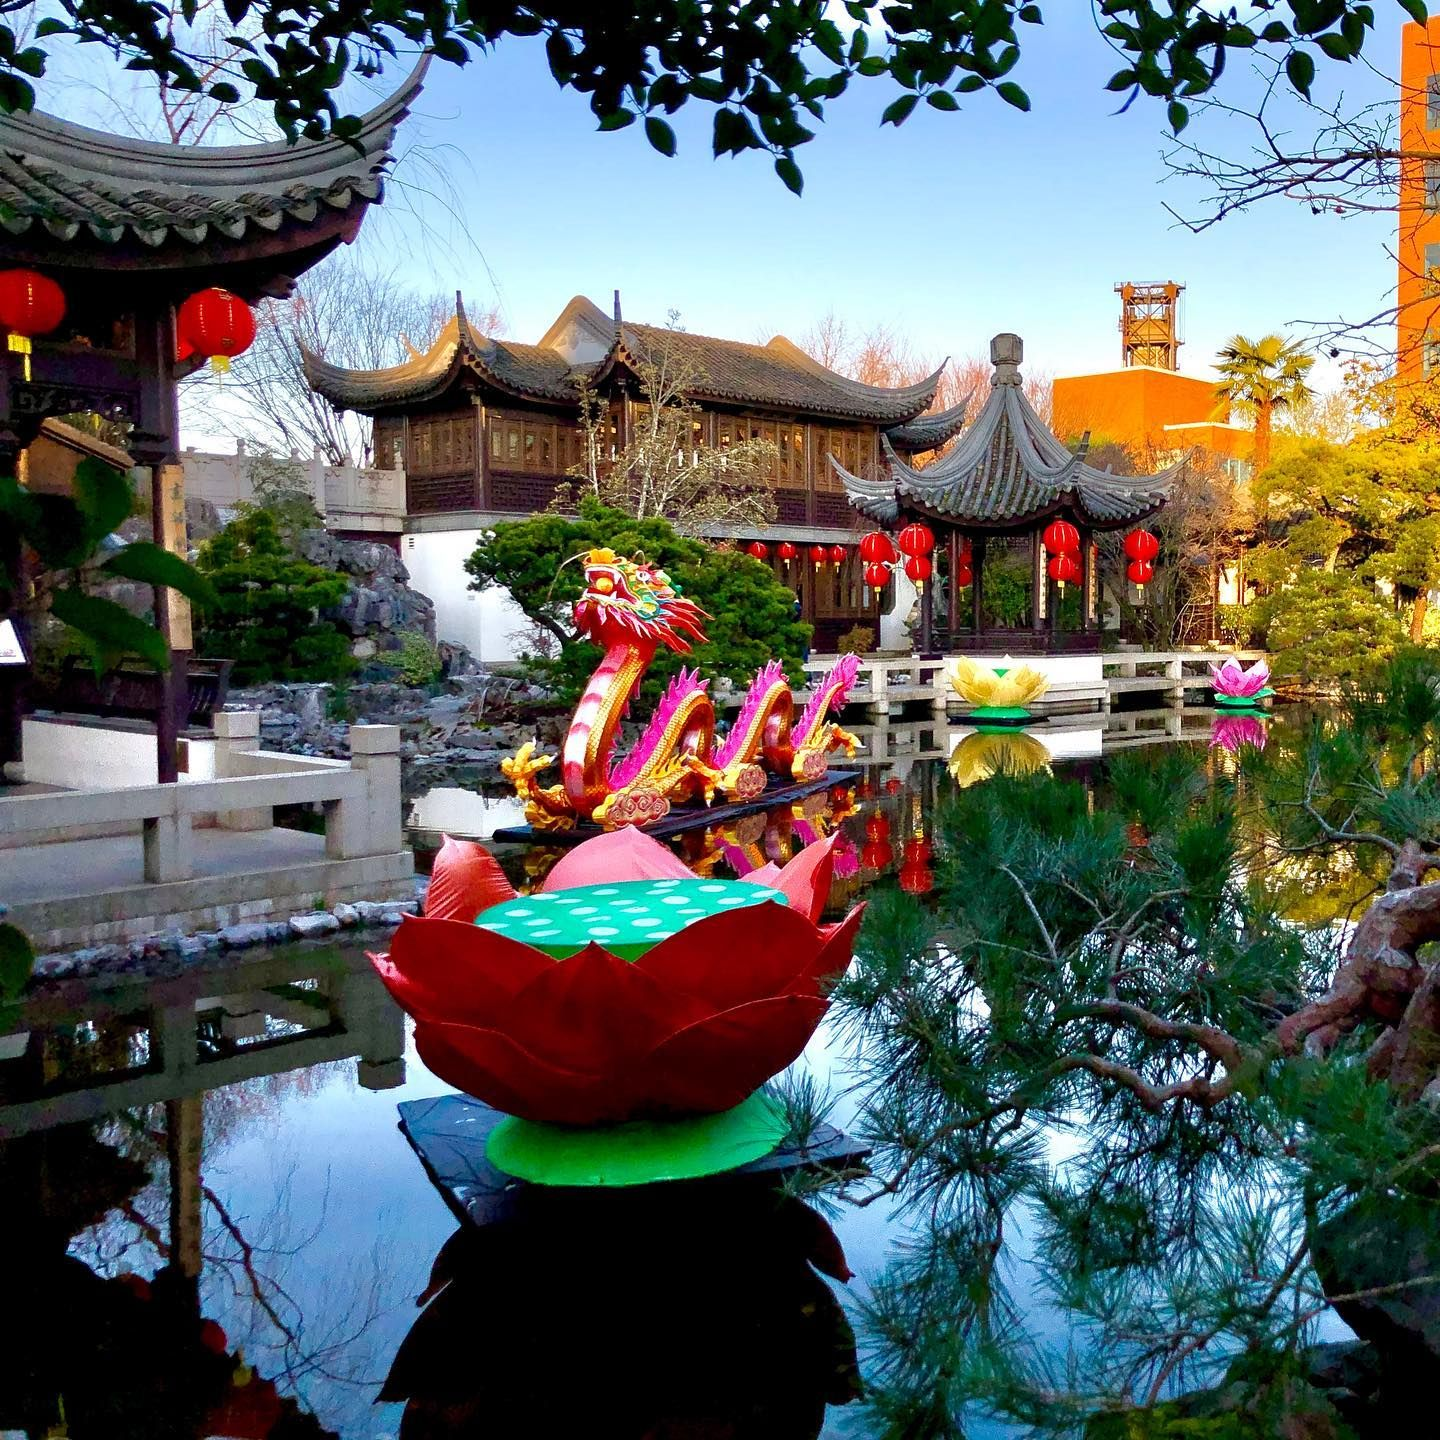 The lansuchinesegarden all dressed up for Year of the Rat